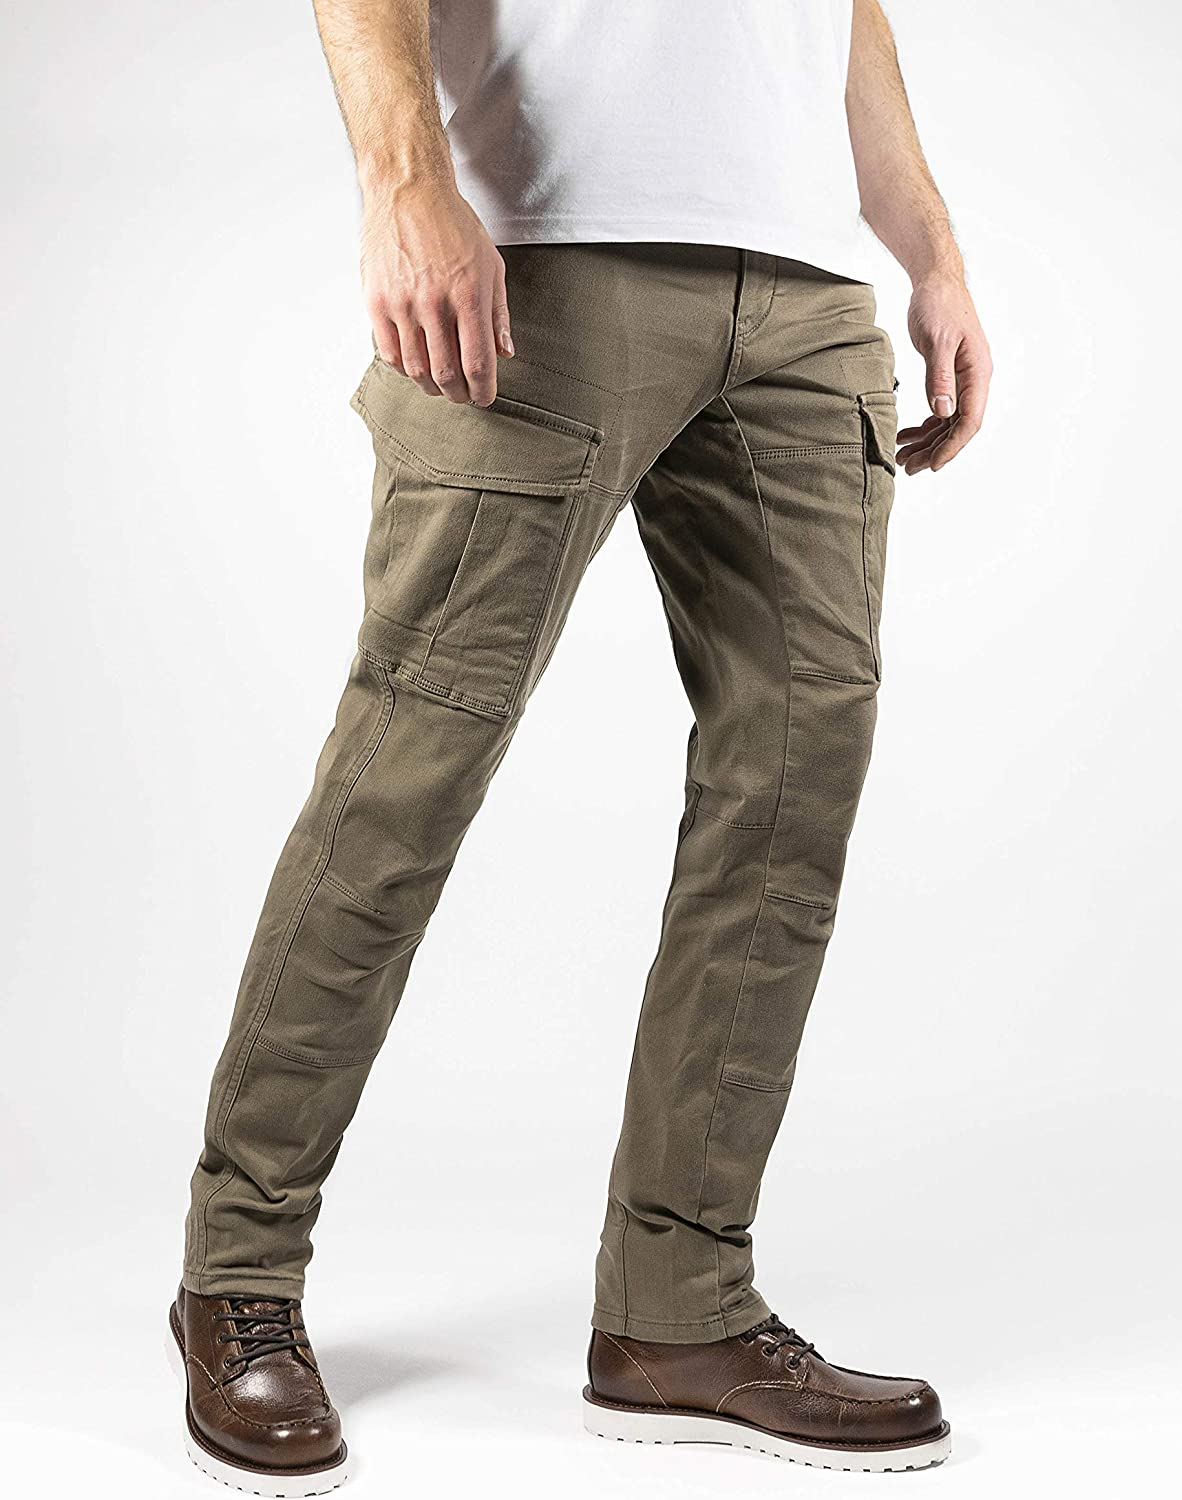 John Doe Stroker Cargo XTM Motorcycle Trousers with Kevlar XTM Made with Dupont Kevlar Can be Inserted Protectors Breathable Motorcycle Cargo Trousers with Side Pockets Beige 34 W//34 L